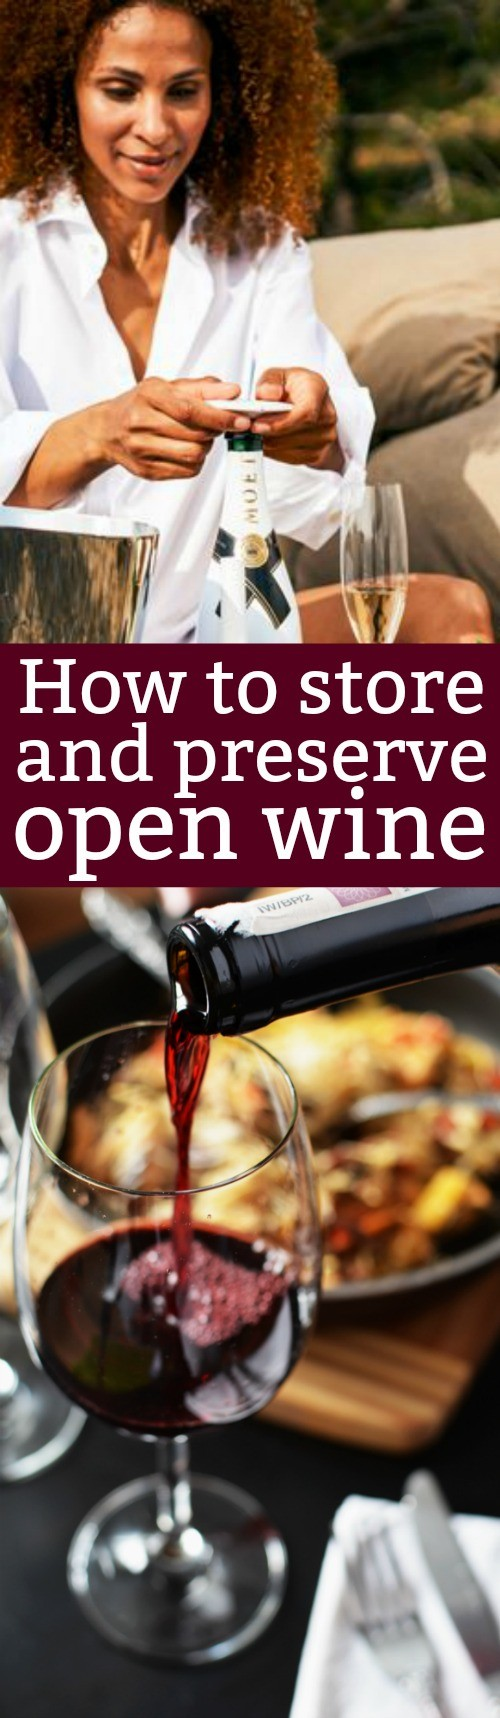 How To Store Open Wine- Never Waste An Open Bottle Of Wine Again! Preserve Your Wine for Optimal Taste and Freshness